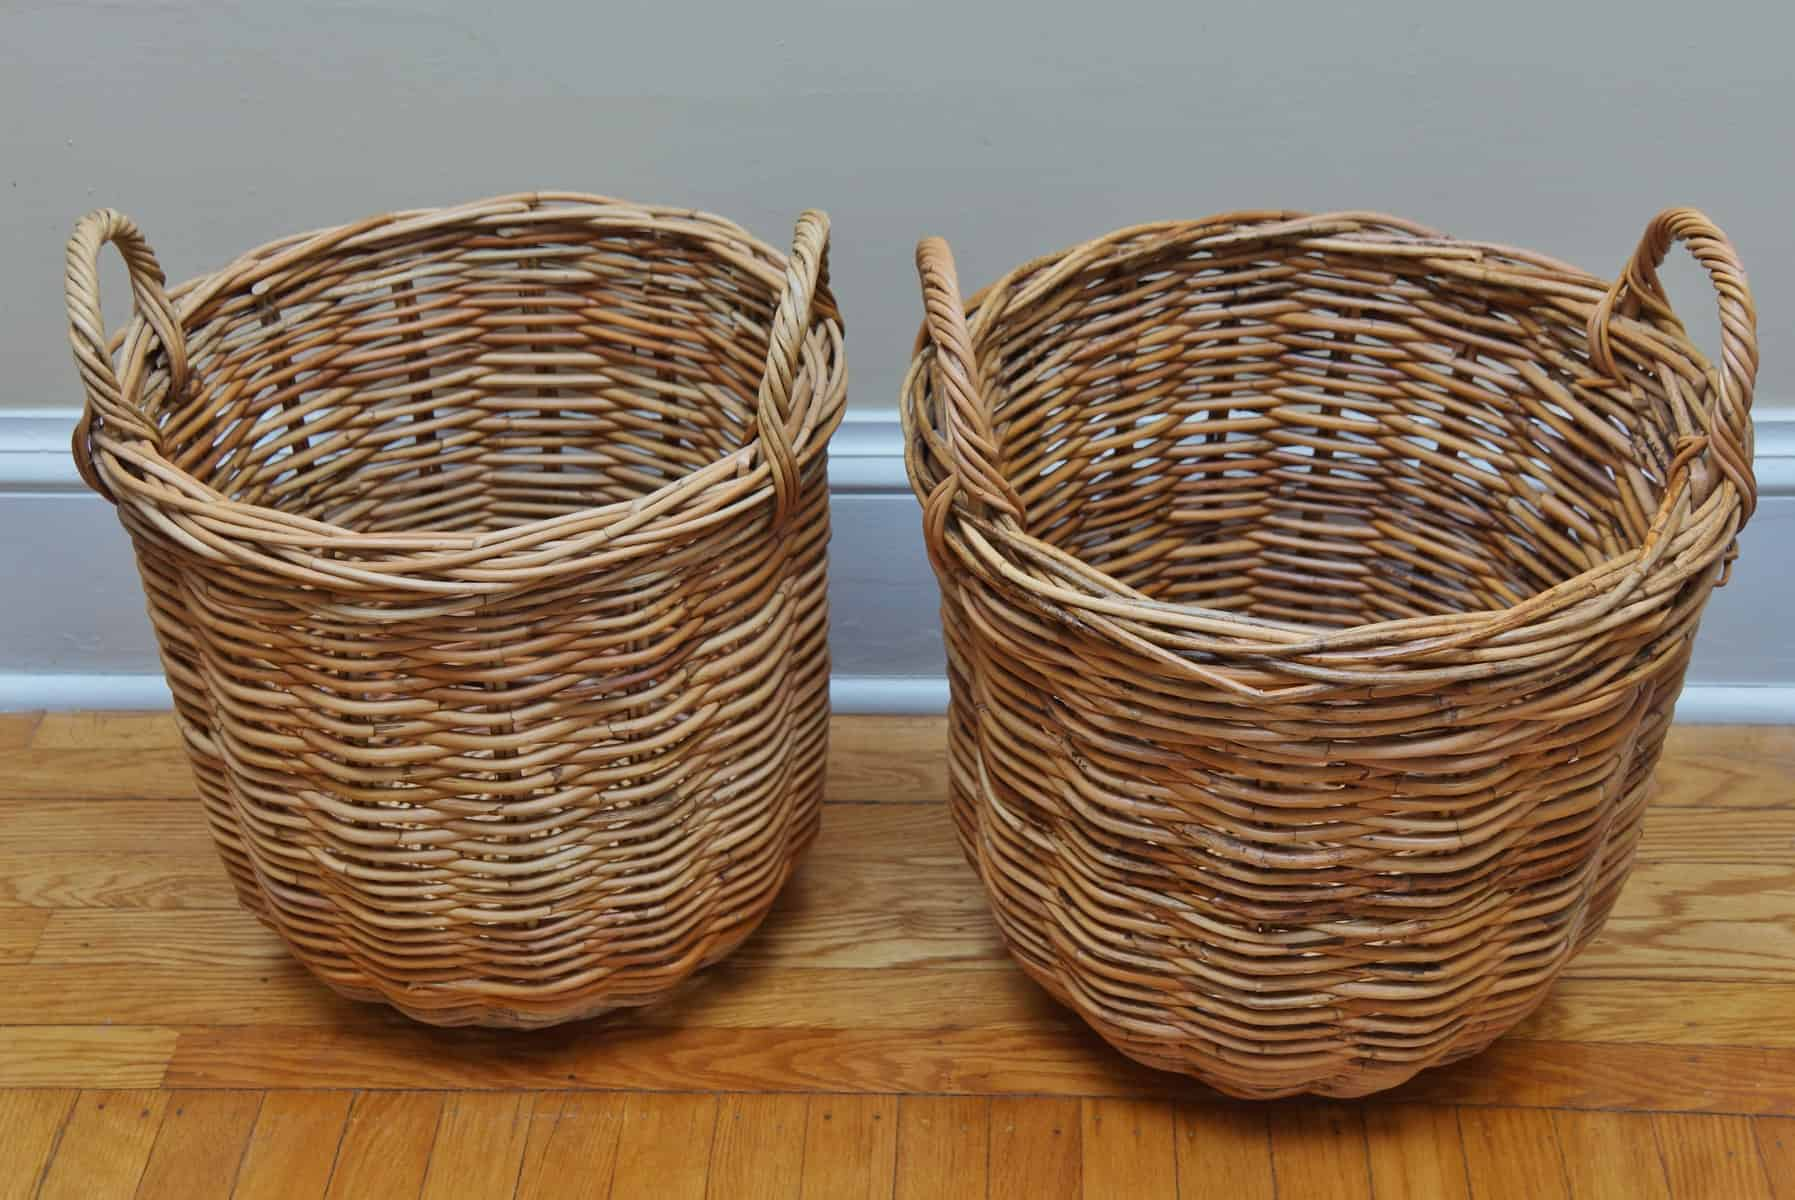 How To Make Diy Basket Liners For Round Baskets